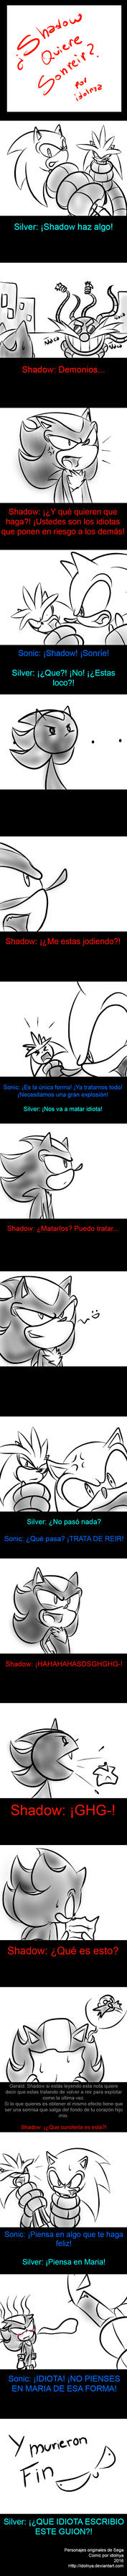 Shadow Quiere Sonreir? by idolnya